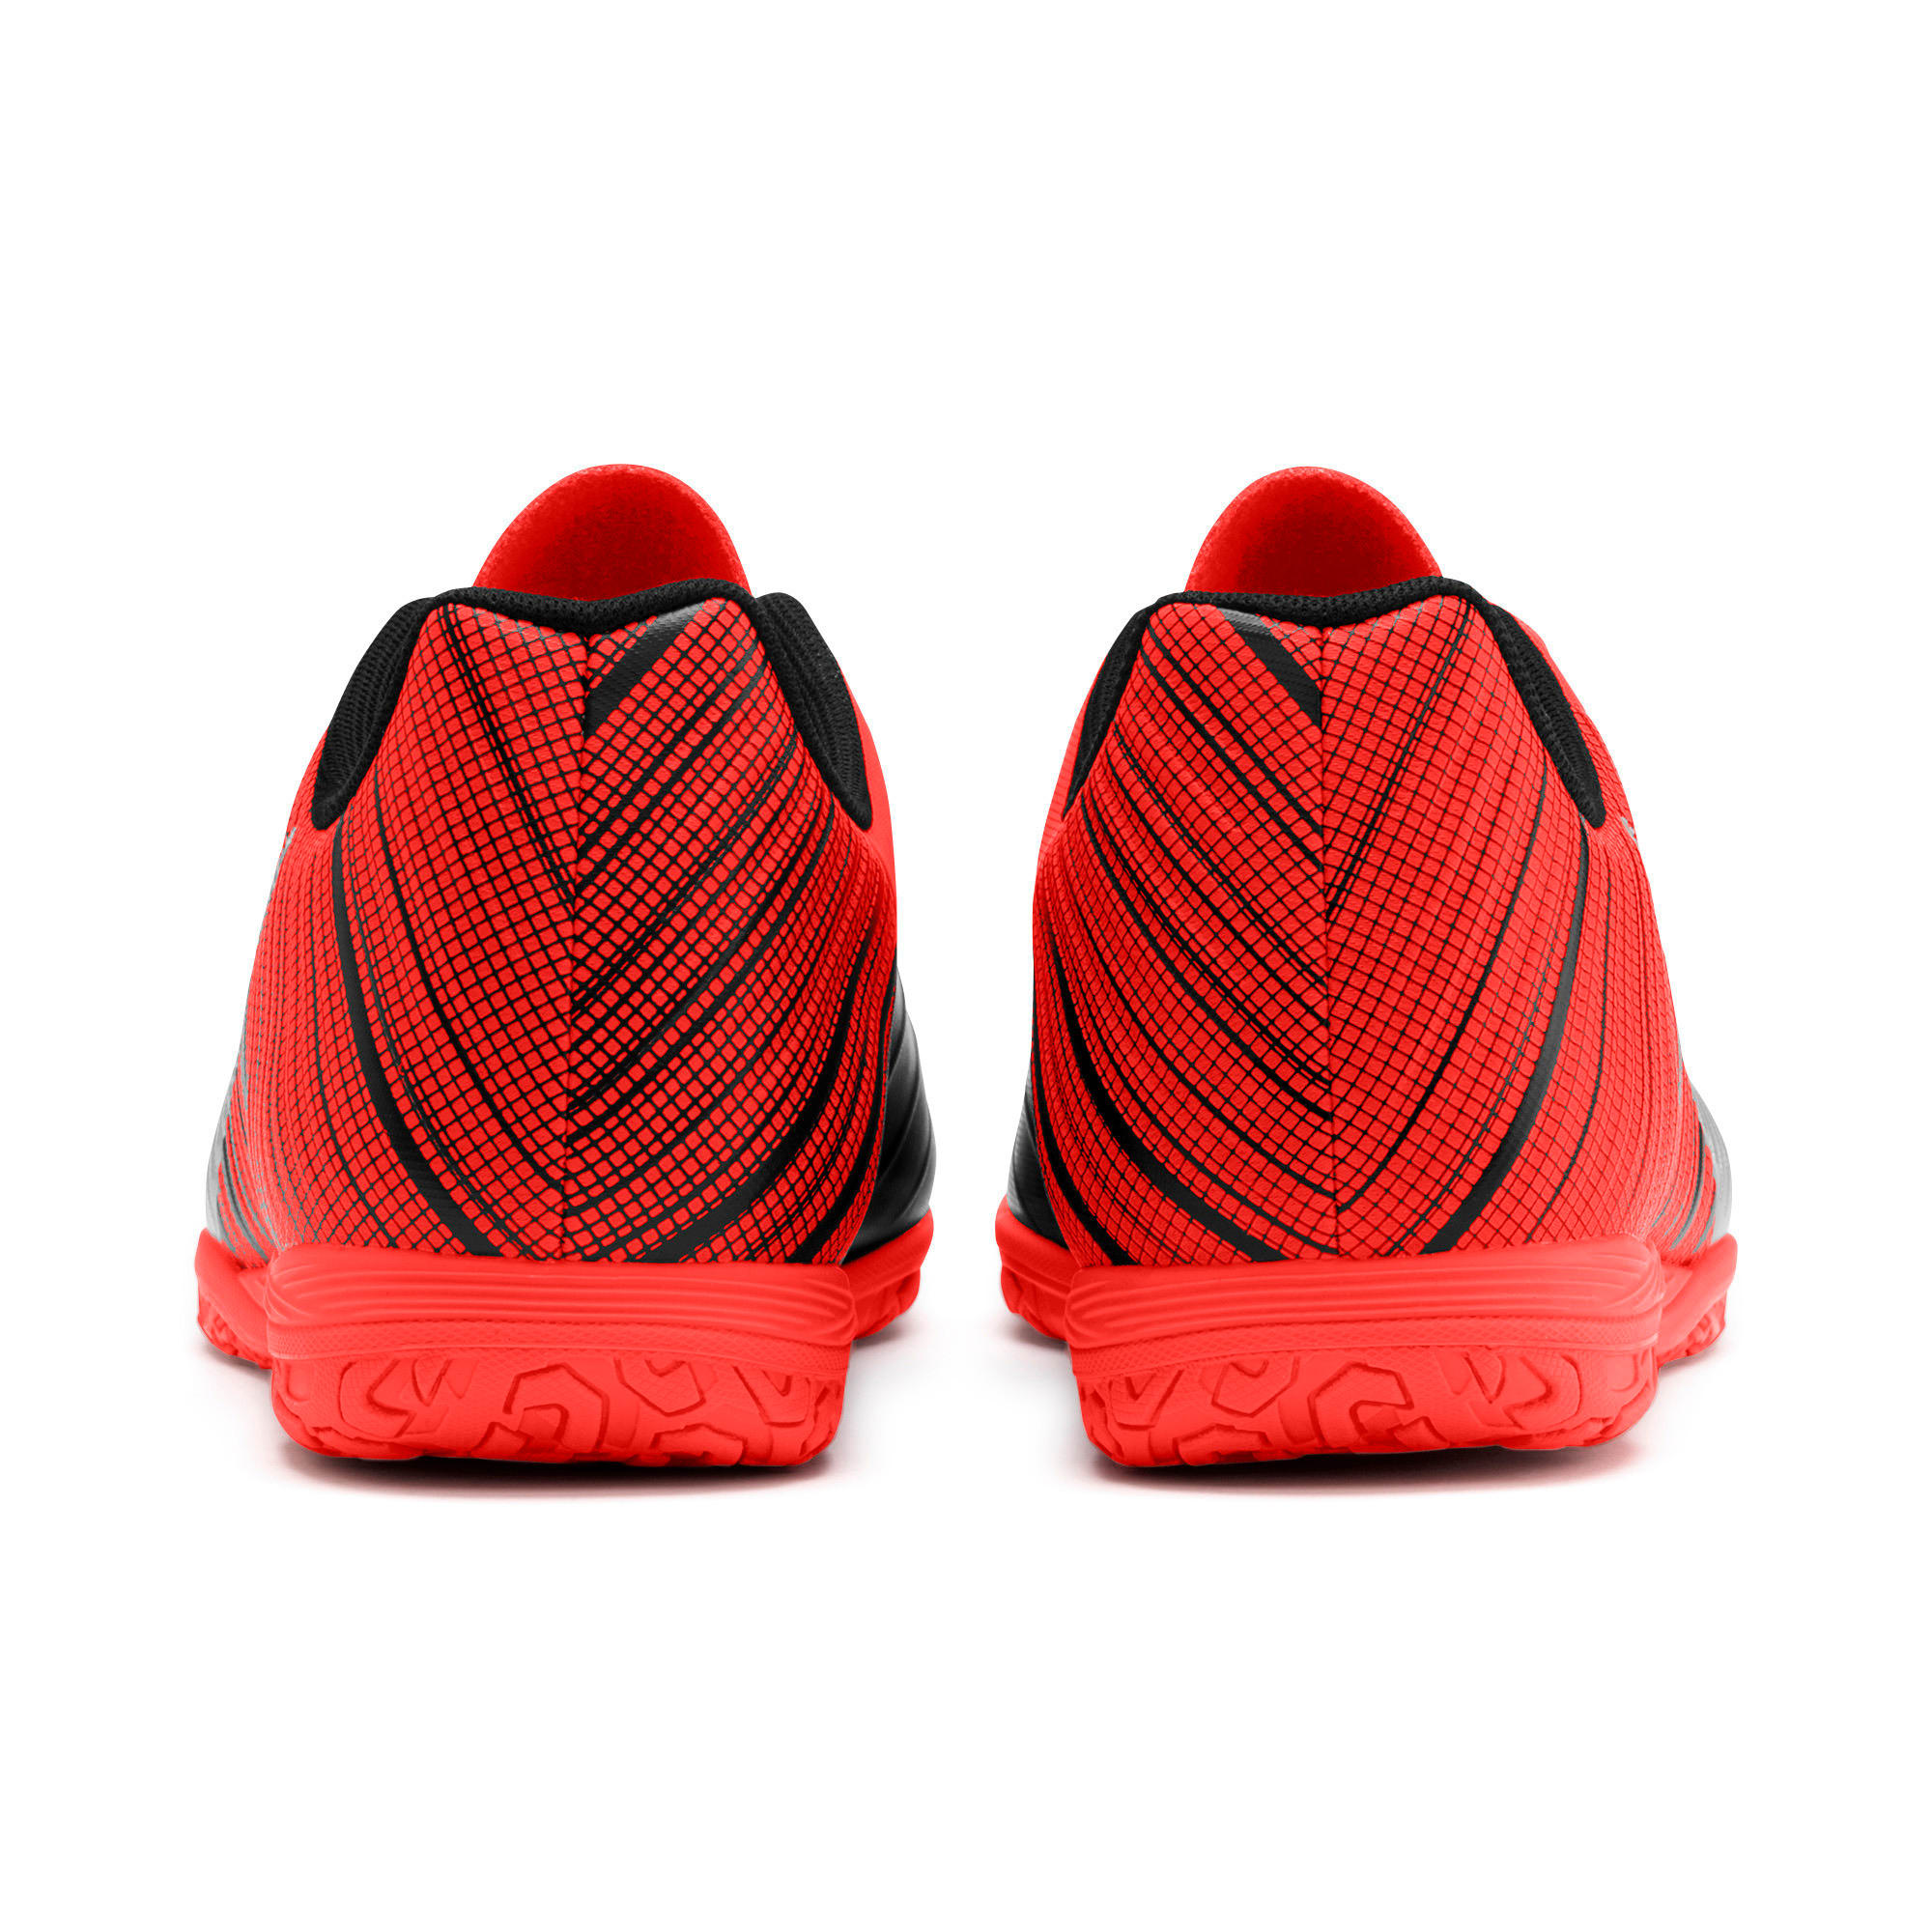 Thumbnail 4 of PUMA ONE 5.4 IT Men's Soccer Shoes, Black-Nrgy Red-Aged Silver, medium